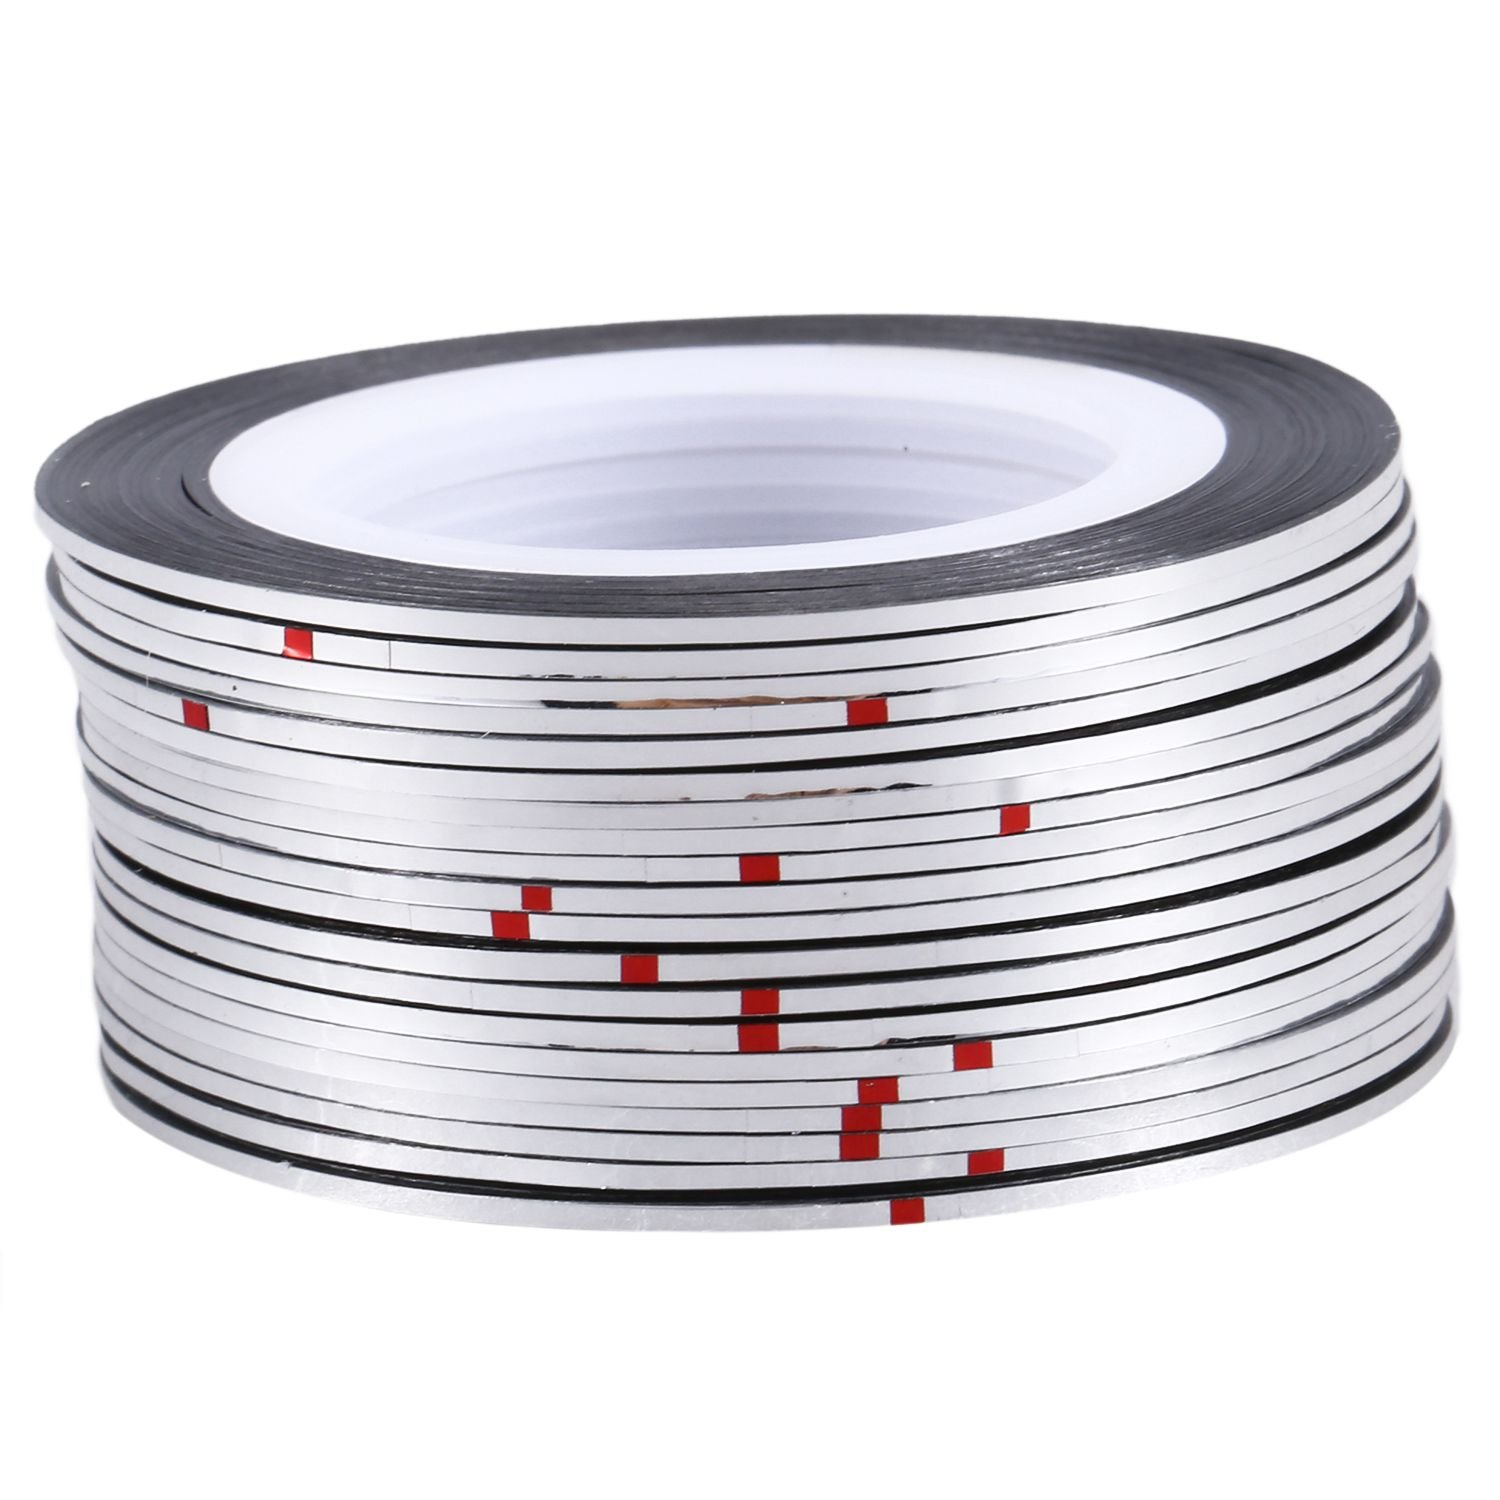 SODIAL 20pcs Nail Stickers Thread Strips Striping Tape Sticker Manicure Nail Art Tapes silver